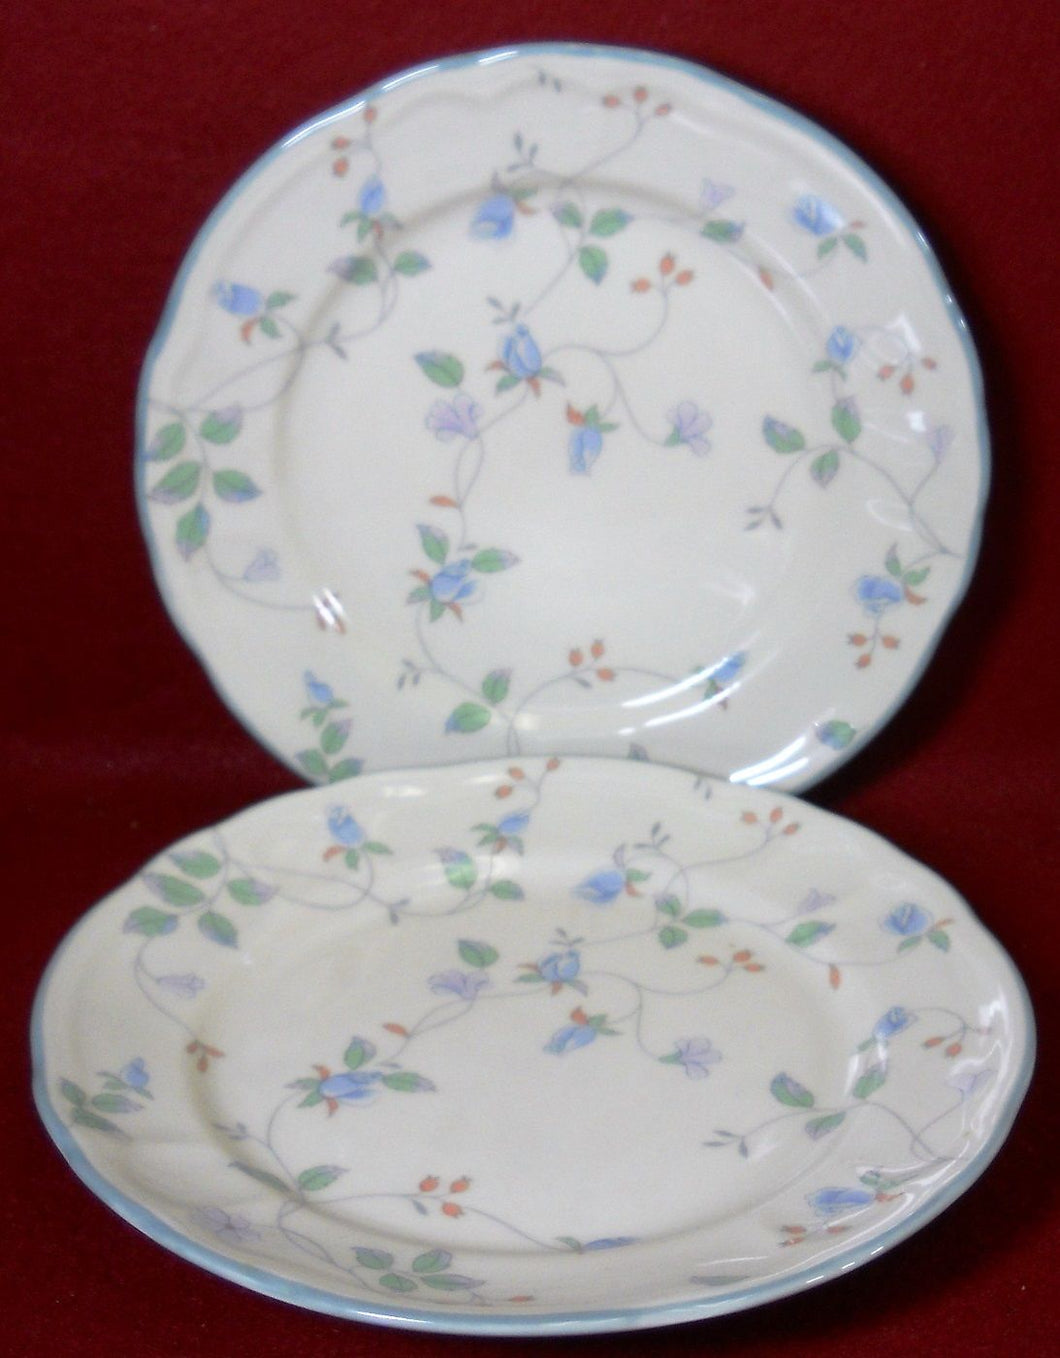 EPOCH (Noritake) china HAVERHILL E525 Two (2) Salad or Dessert Plates - 7-3/4